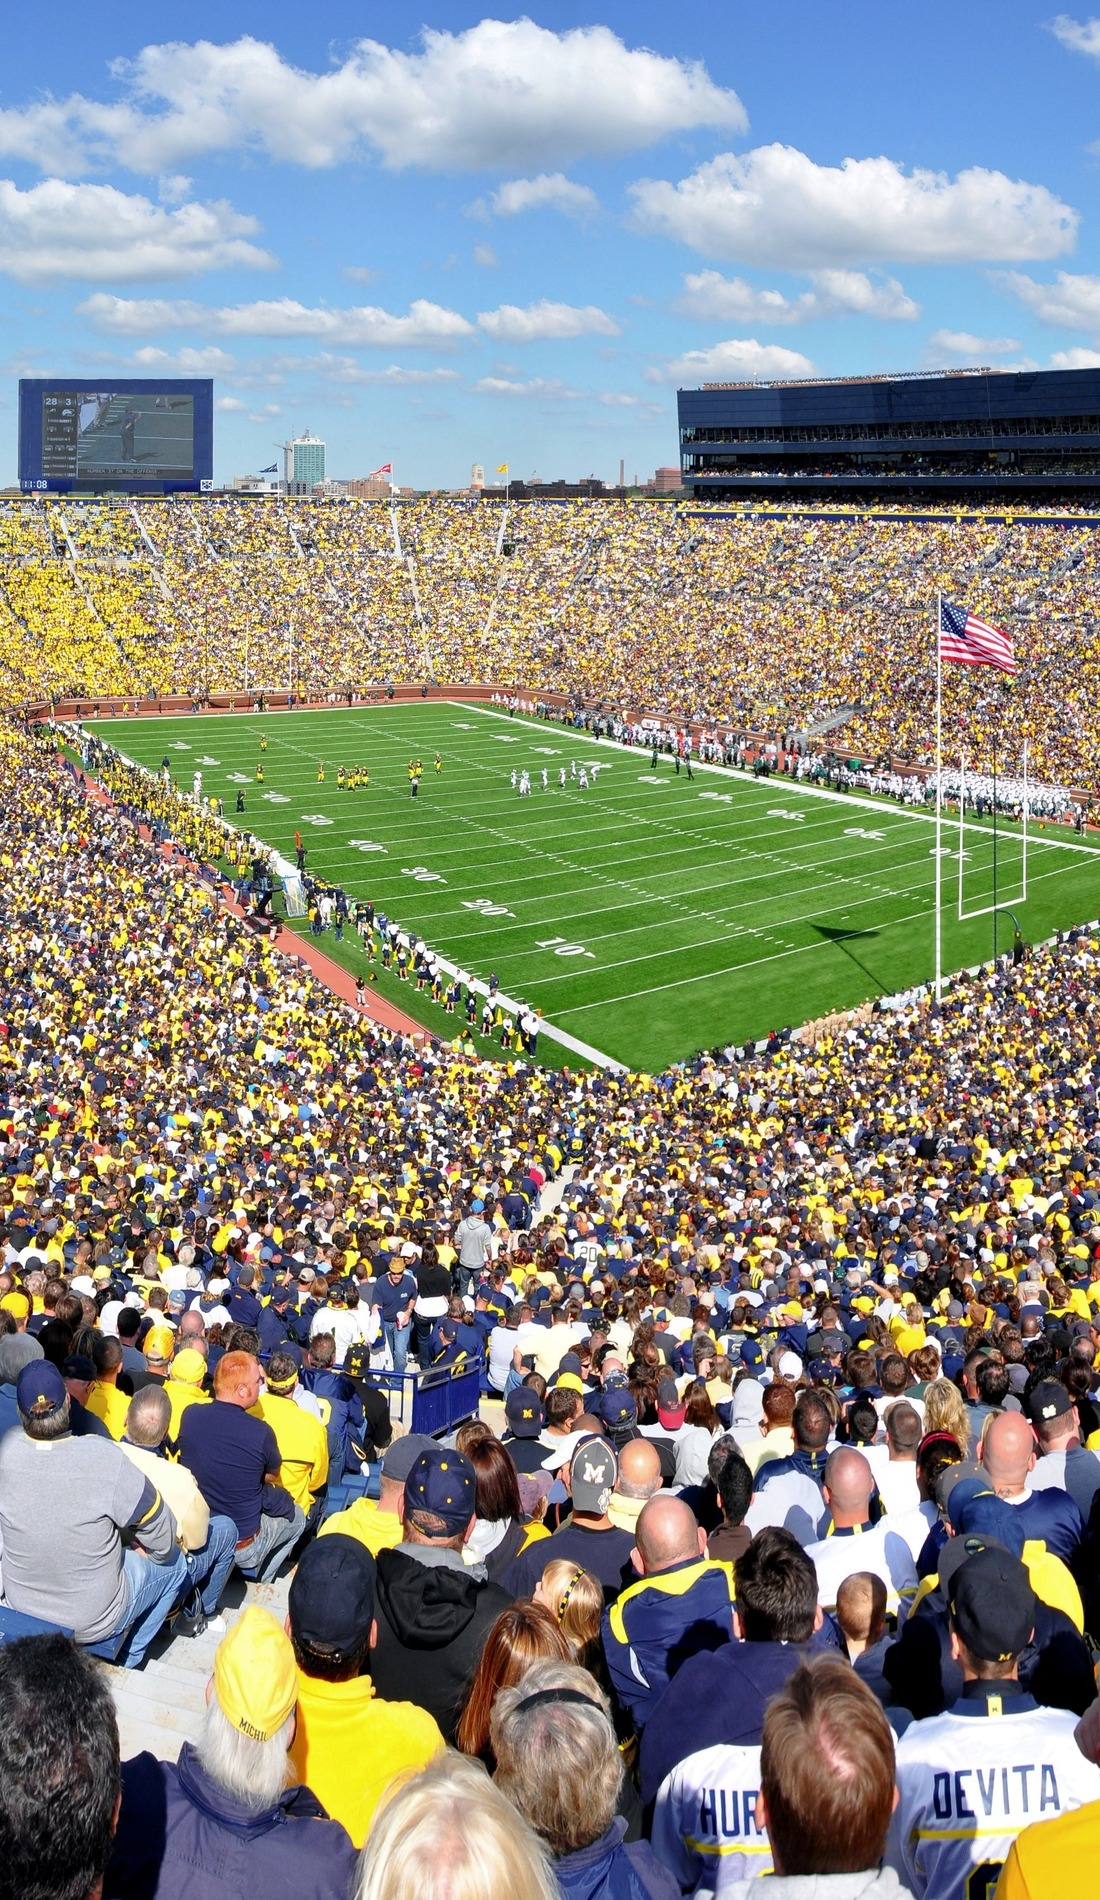 A Michigan Wolverines Football live event